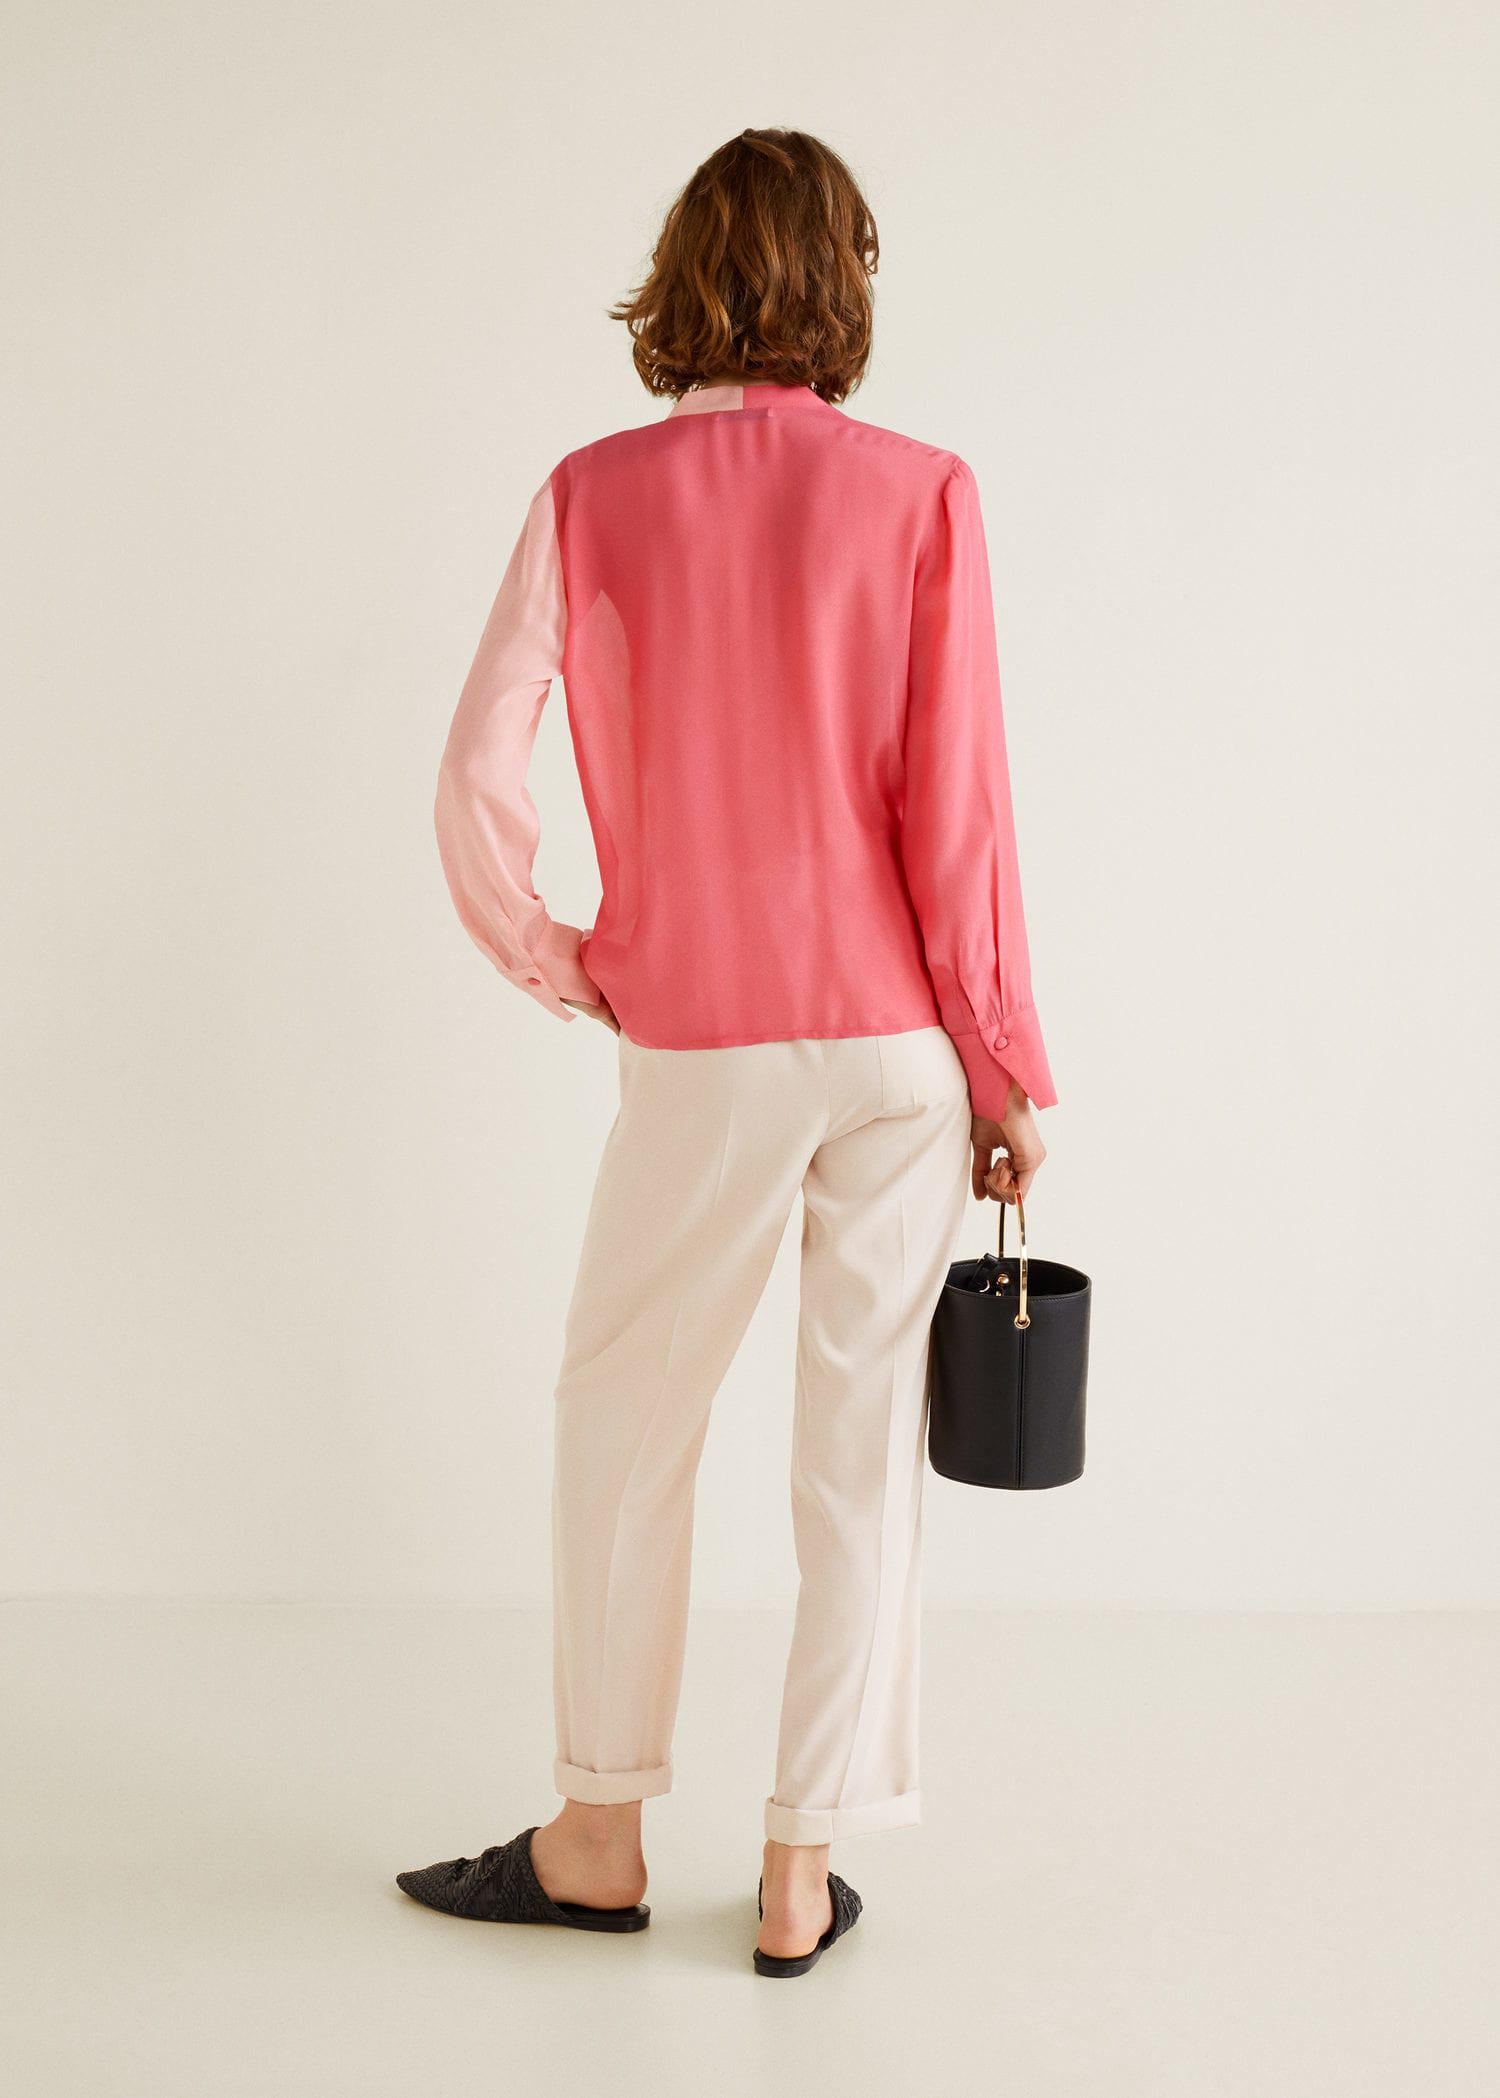 Mango Two-tone Flowy Blouse in Pink